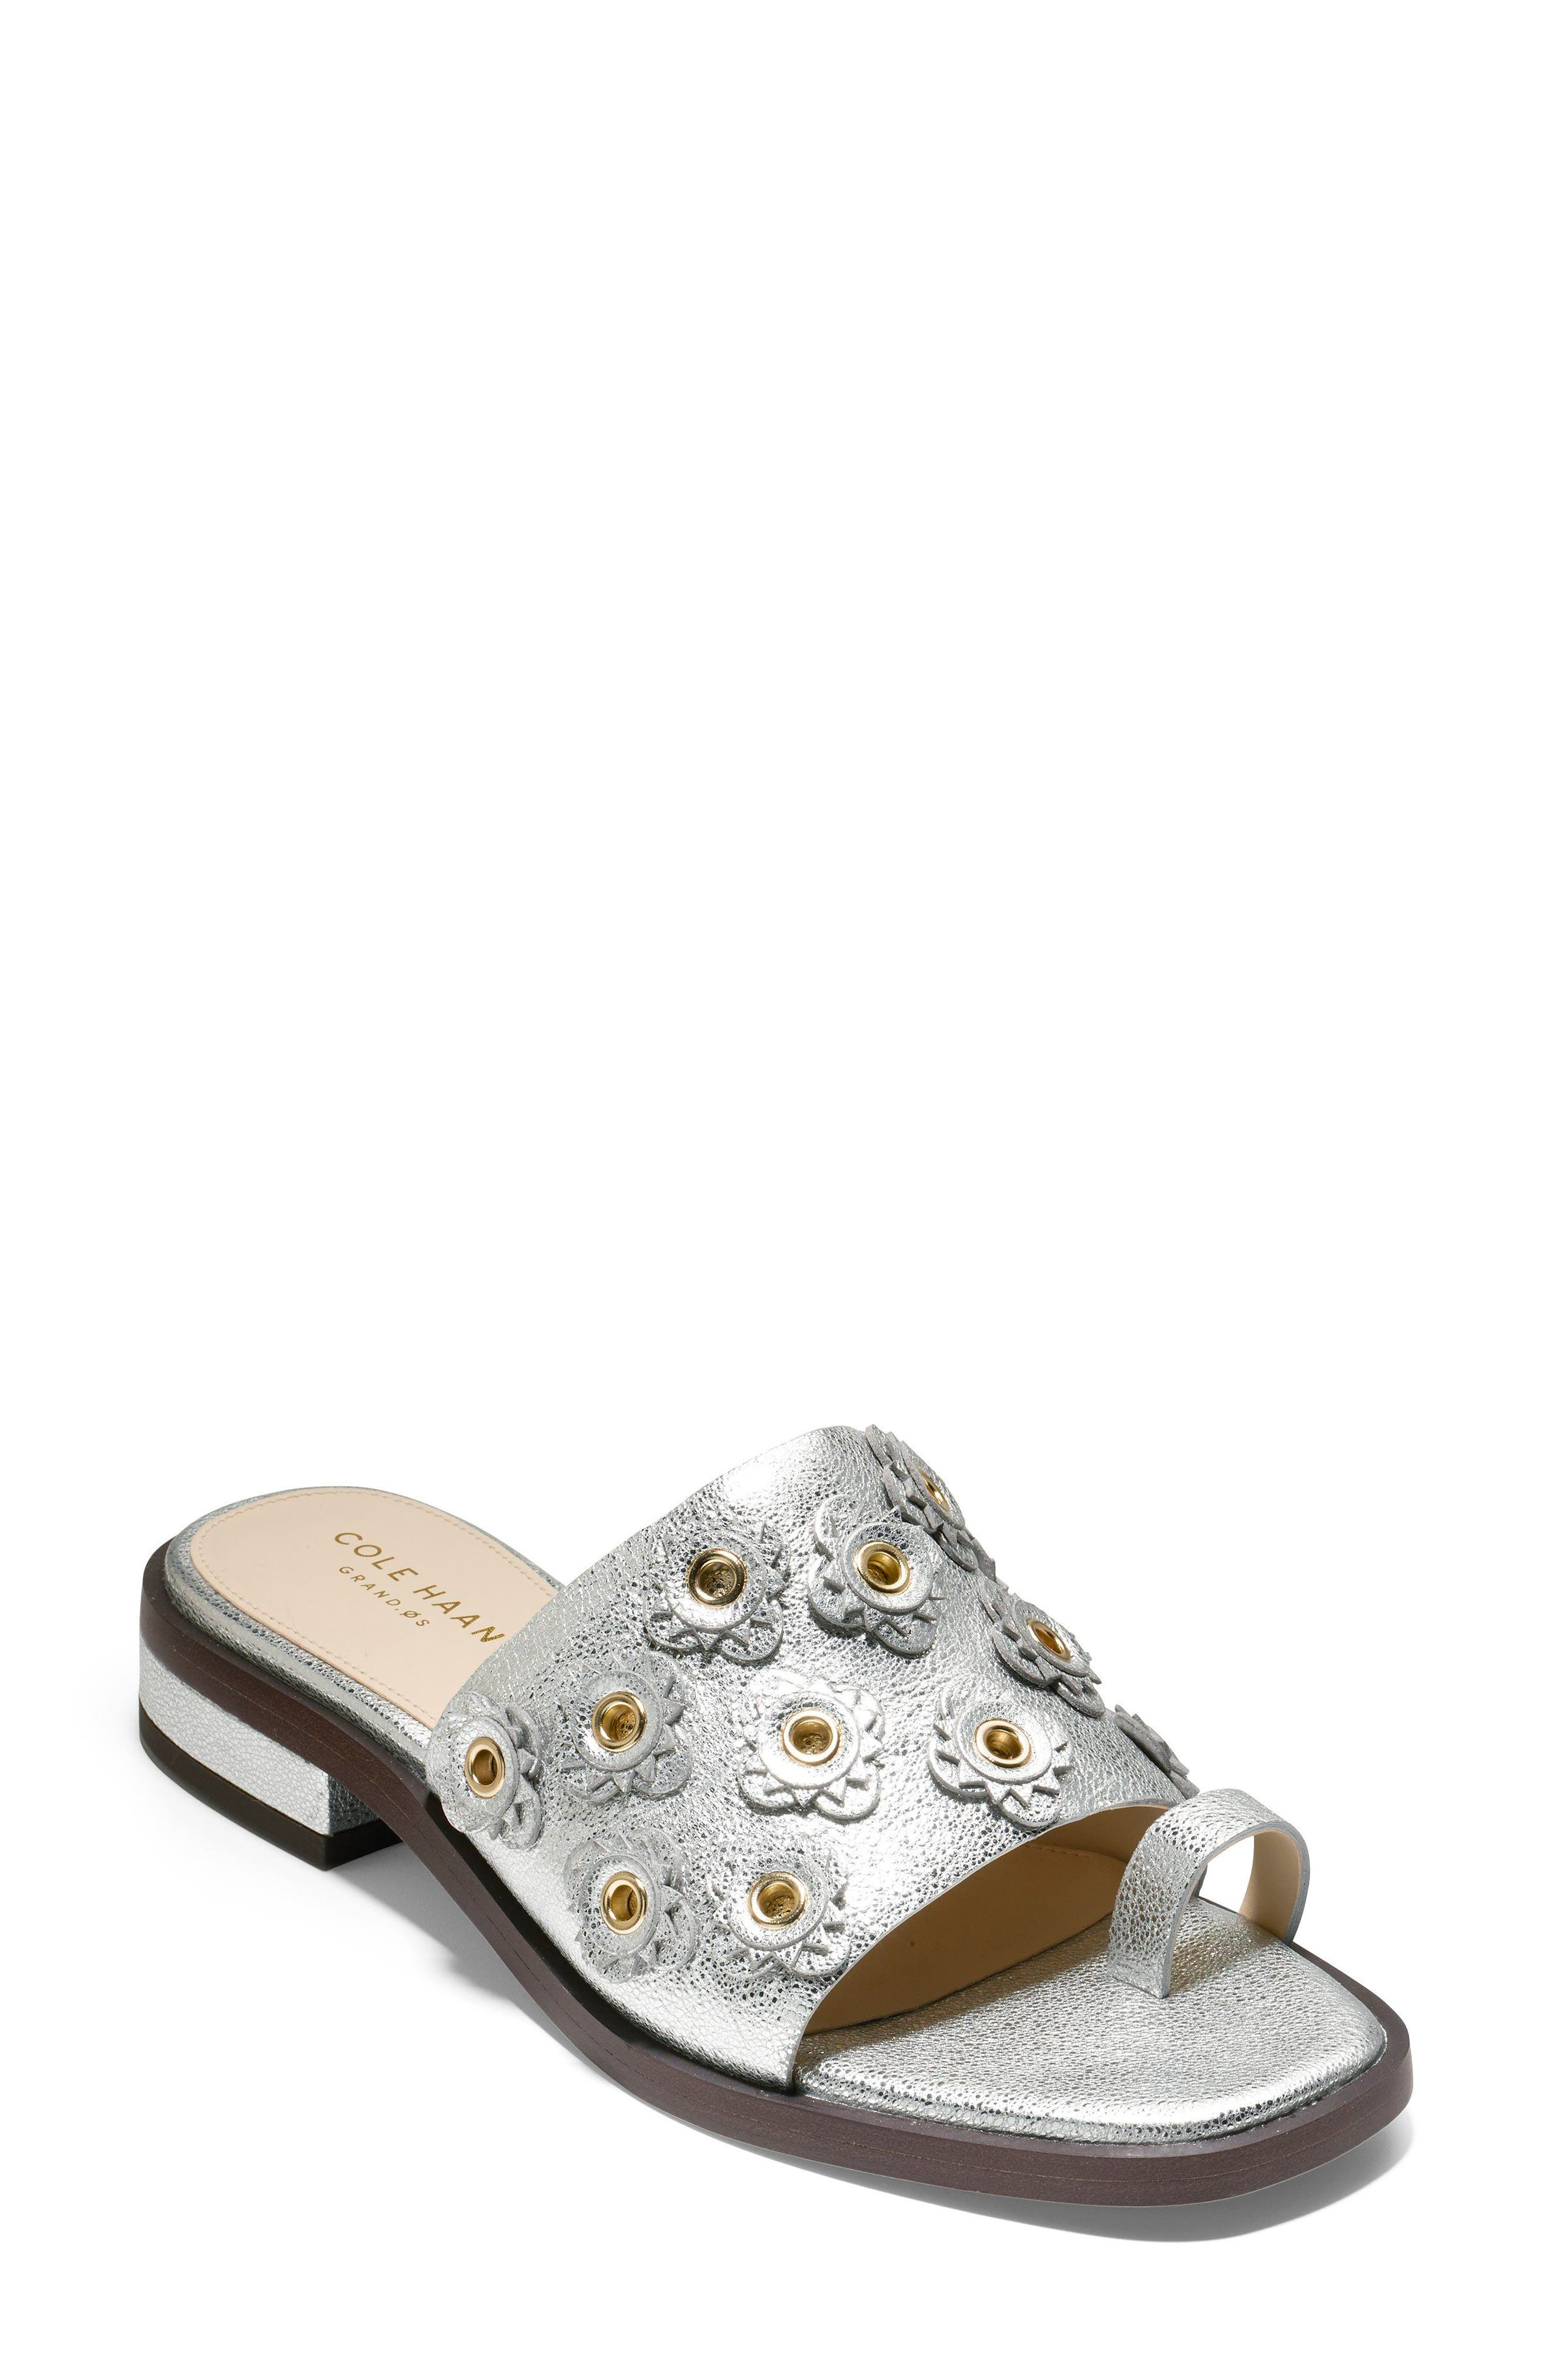 Carly Floral Sandal,                             Main thumbnail 1, color,                             SILVER METALLIC LEATHER